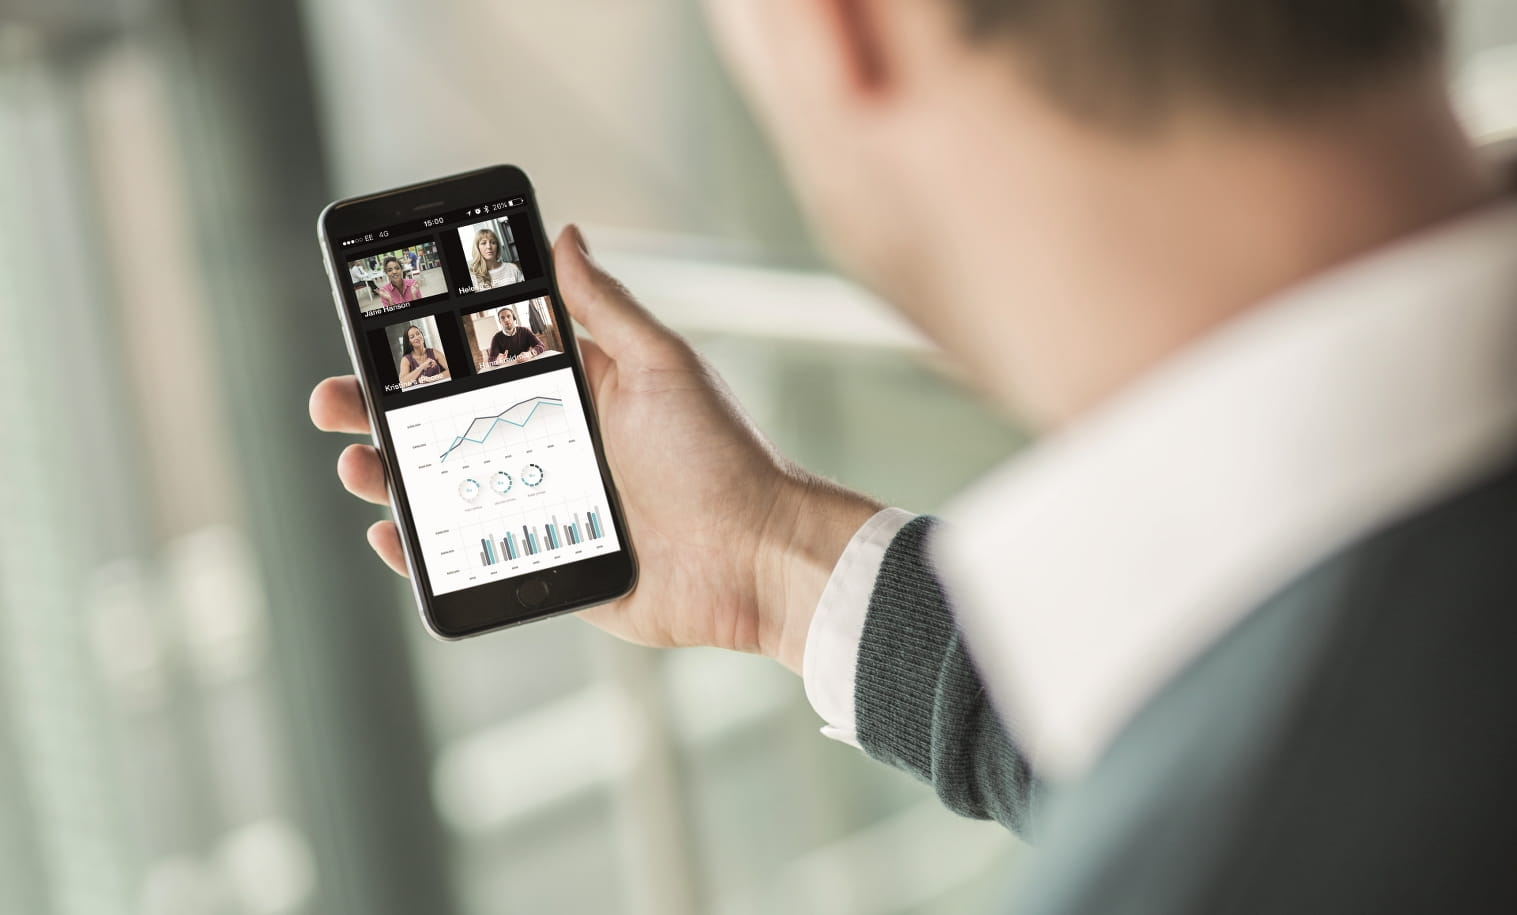 OmniJoin mobile web conferencing